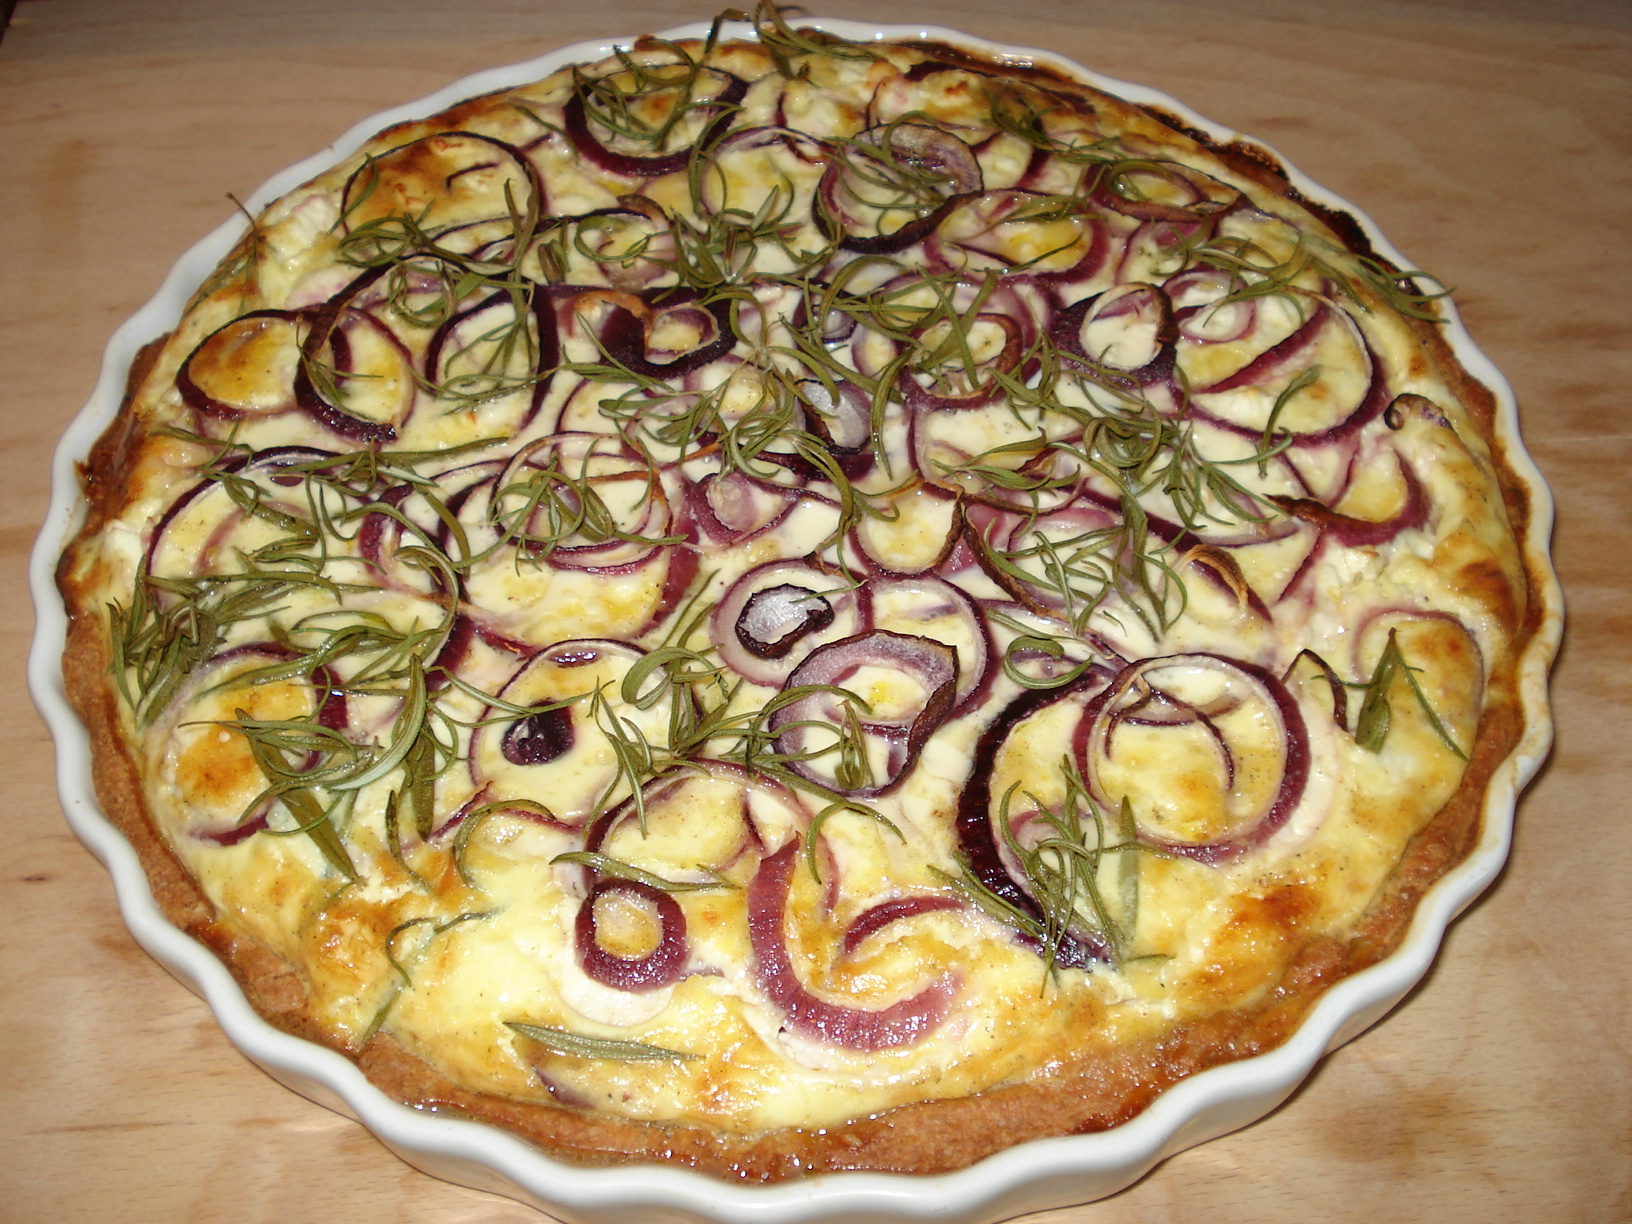 Potato, cheese and onion pie with rosemary